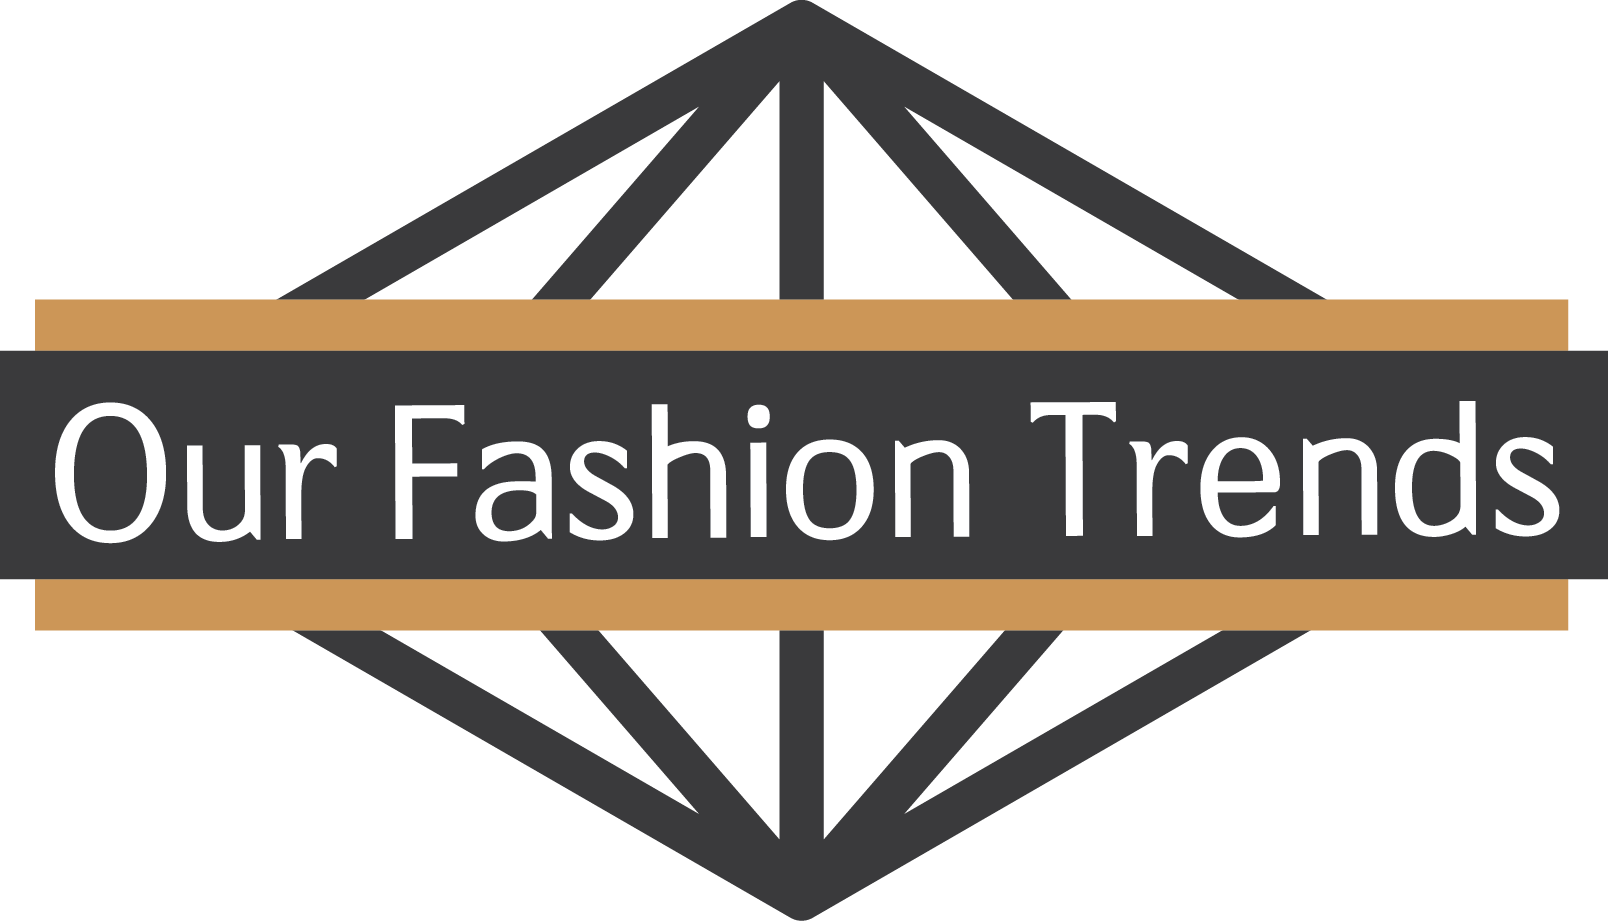 Our fashion trends logo